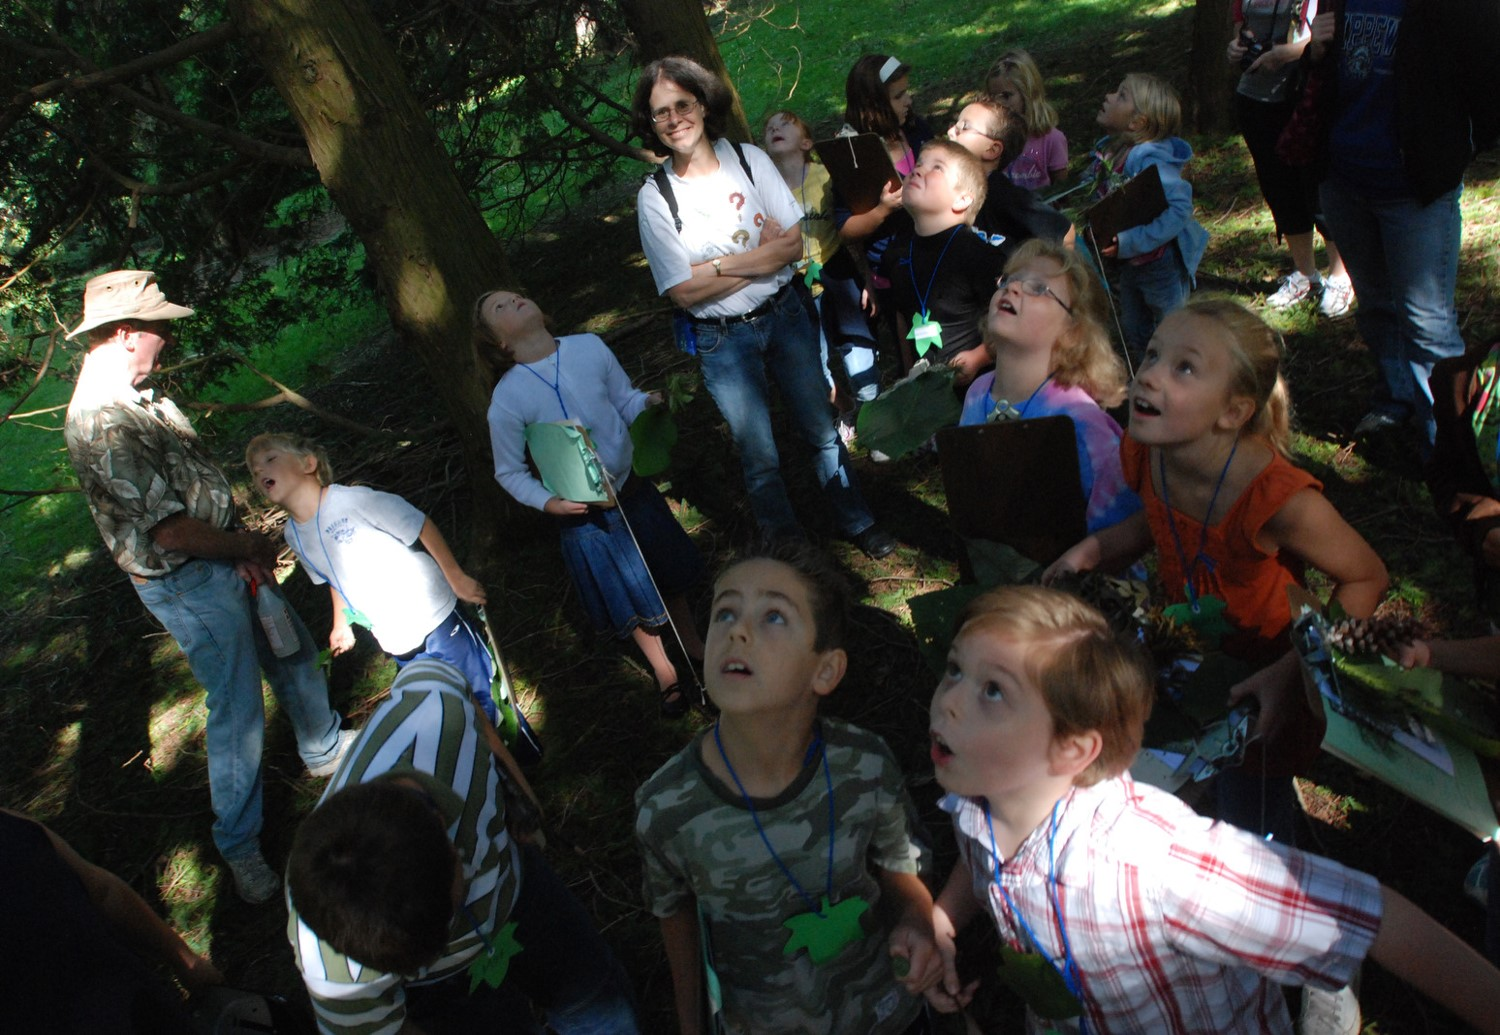 Children wowed by umbrella magnolias